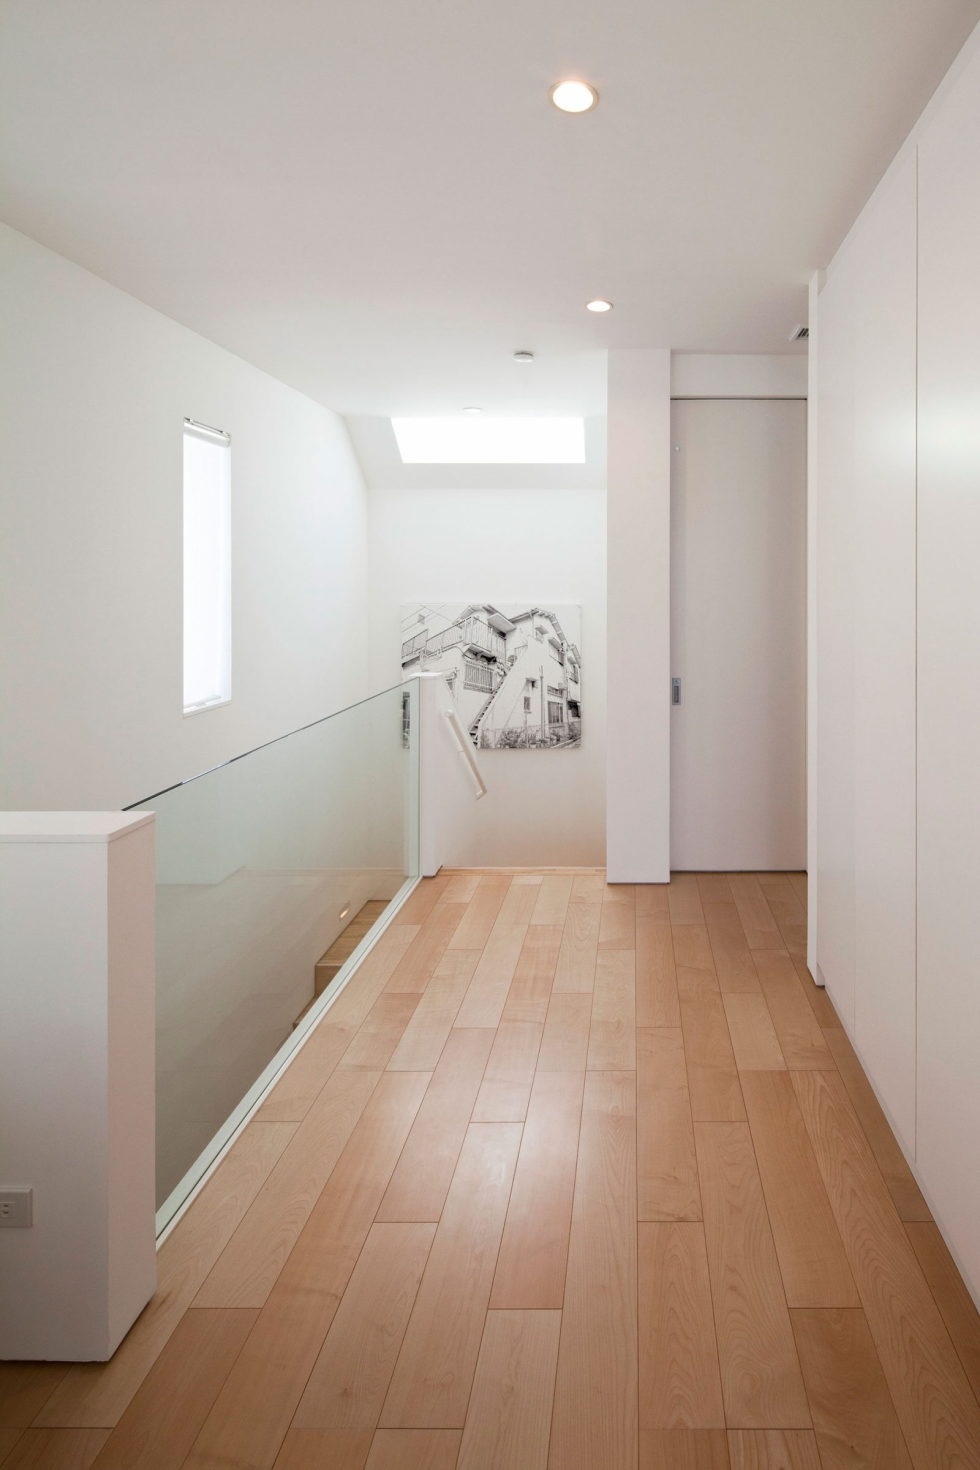 Zen Design House From RCK Design Studio In Japan 19